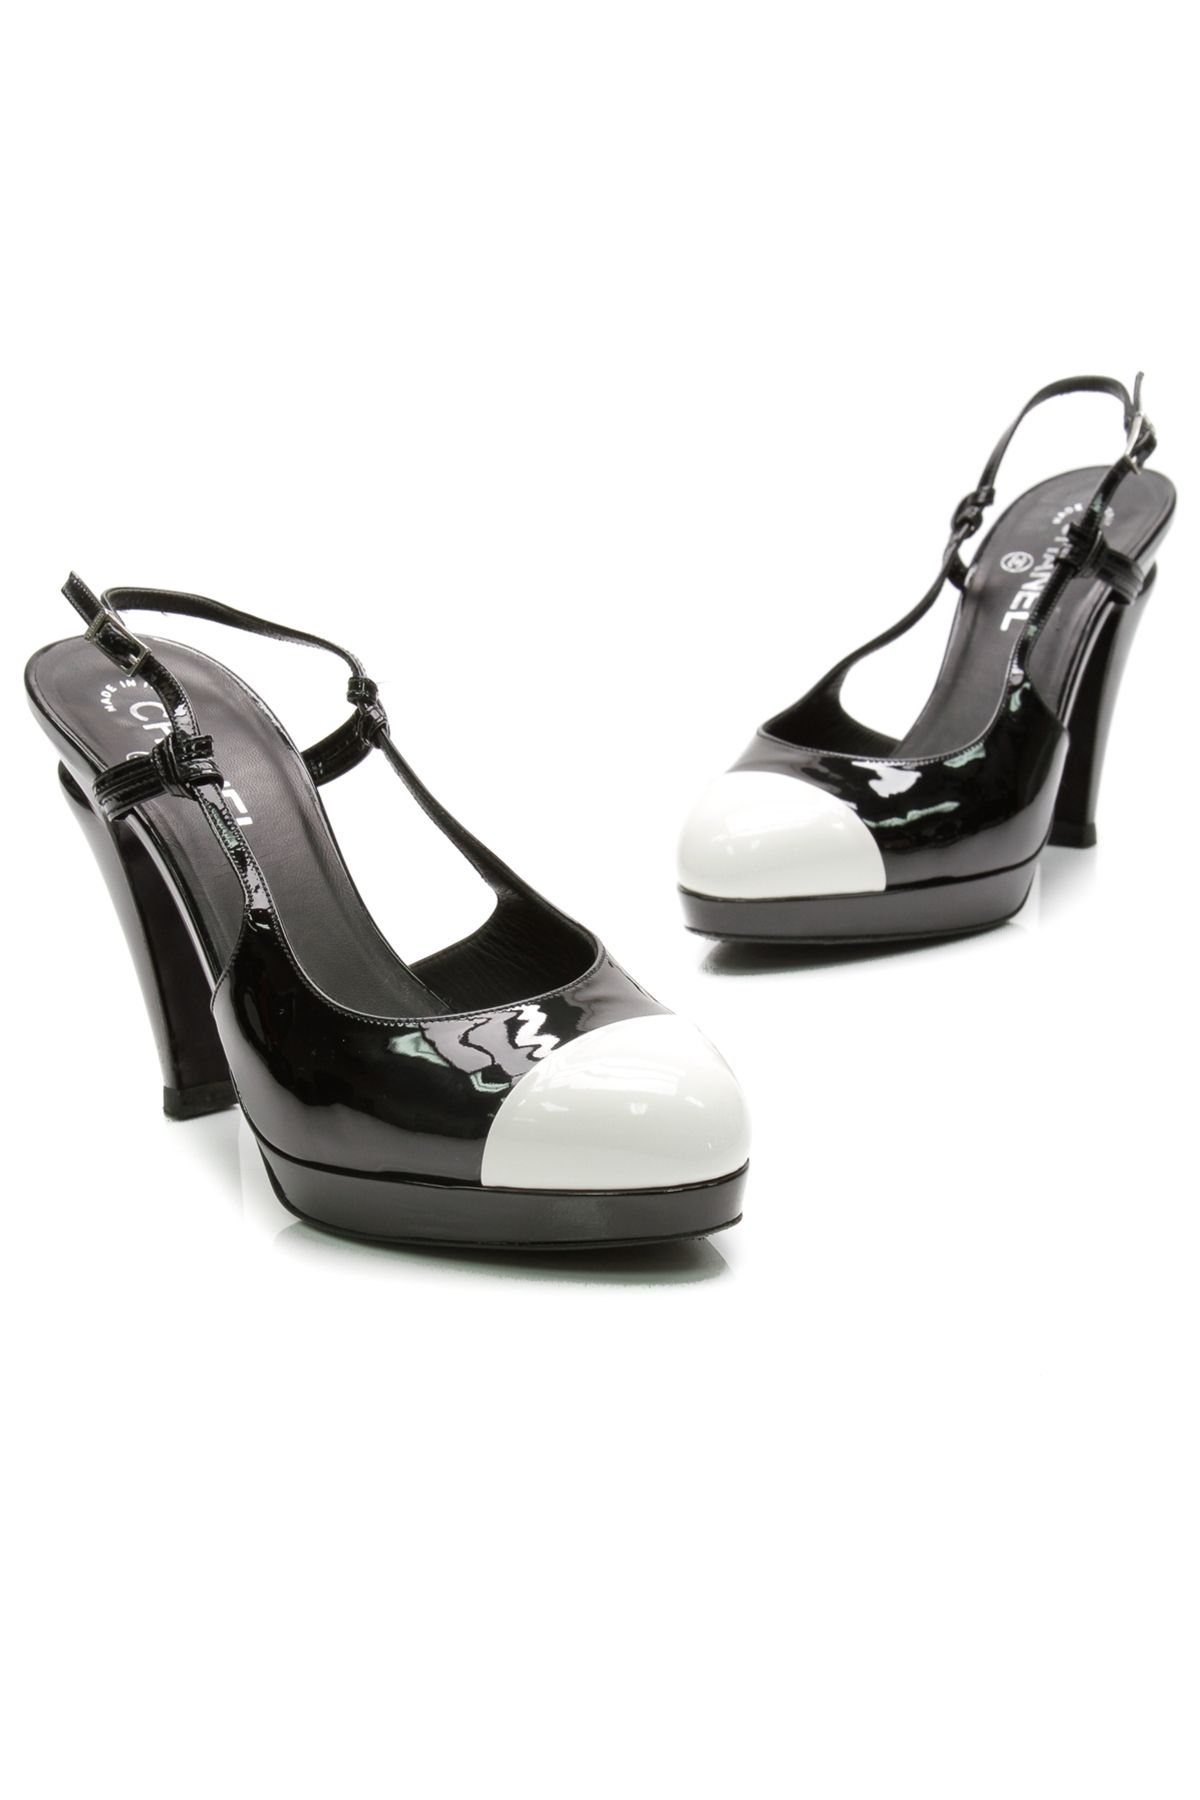 cc886f19605 Chanel Black   White Patent Leather Cap Toe Slingback Pumps - Our Price    319.99